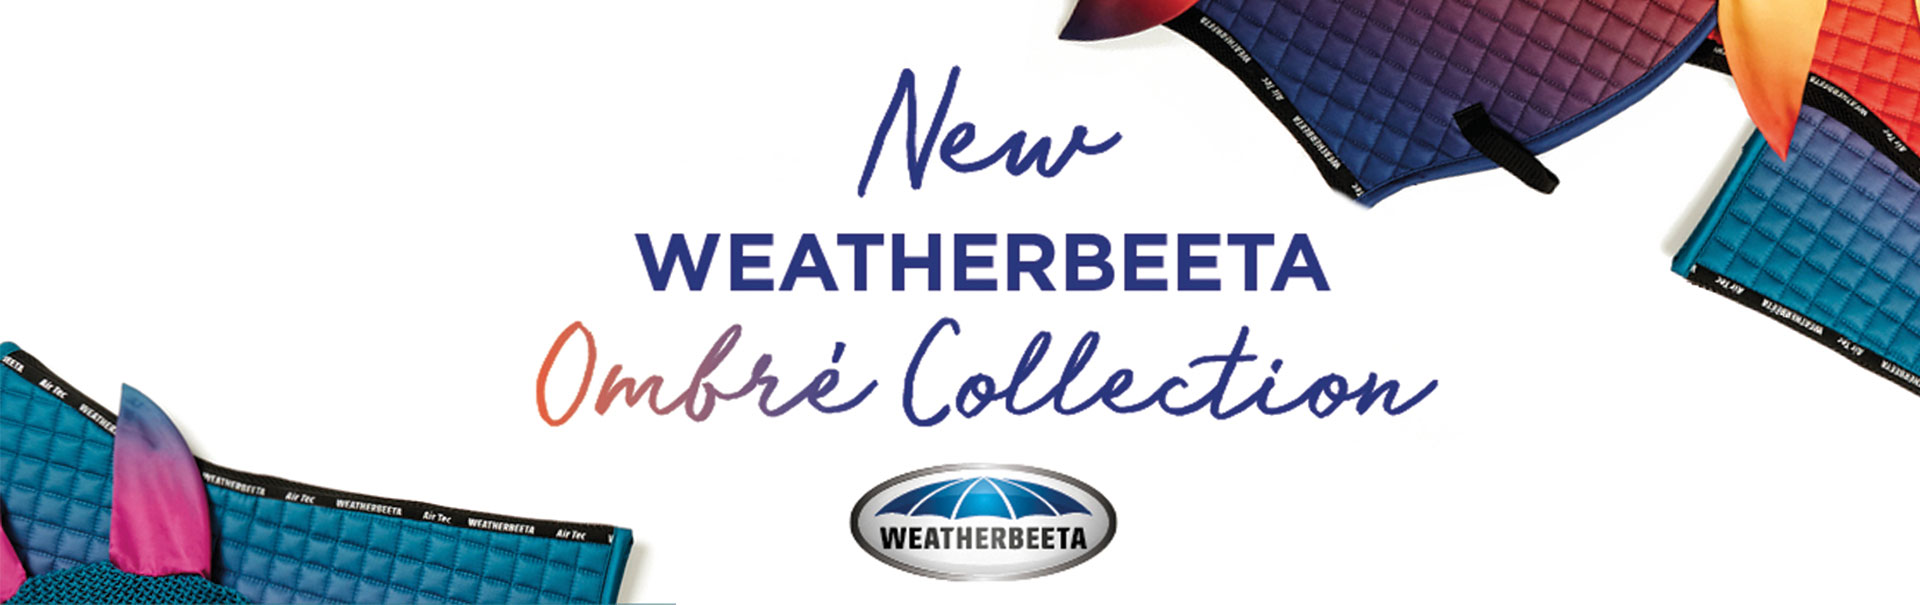 Weatherbeeta Ombre Collection